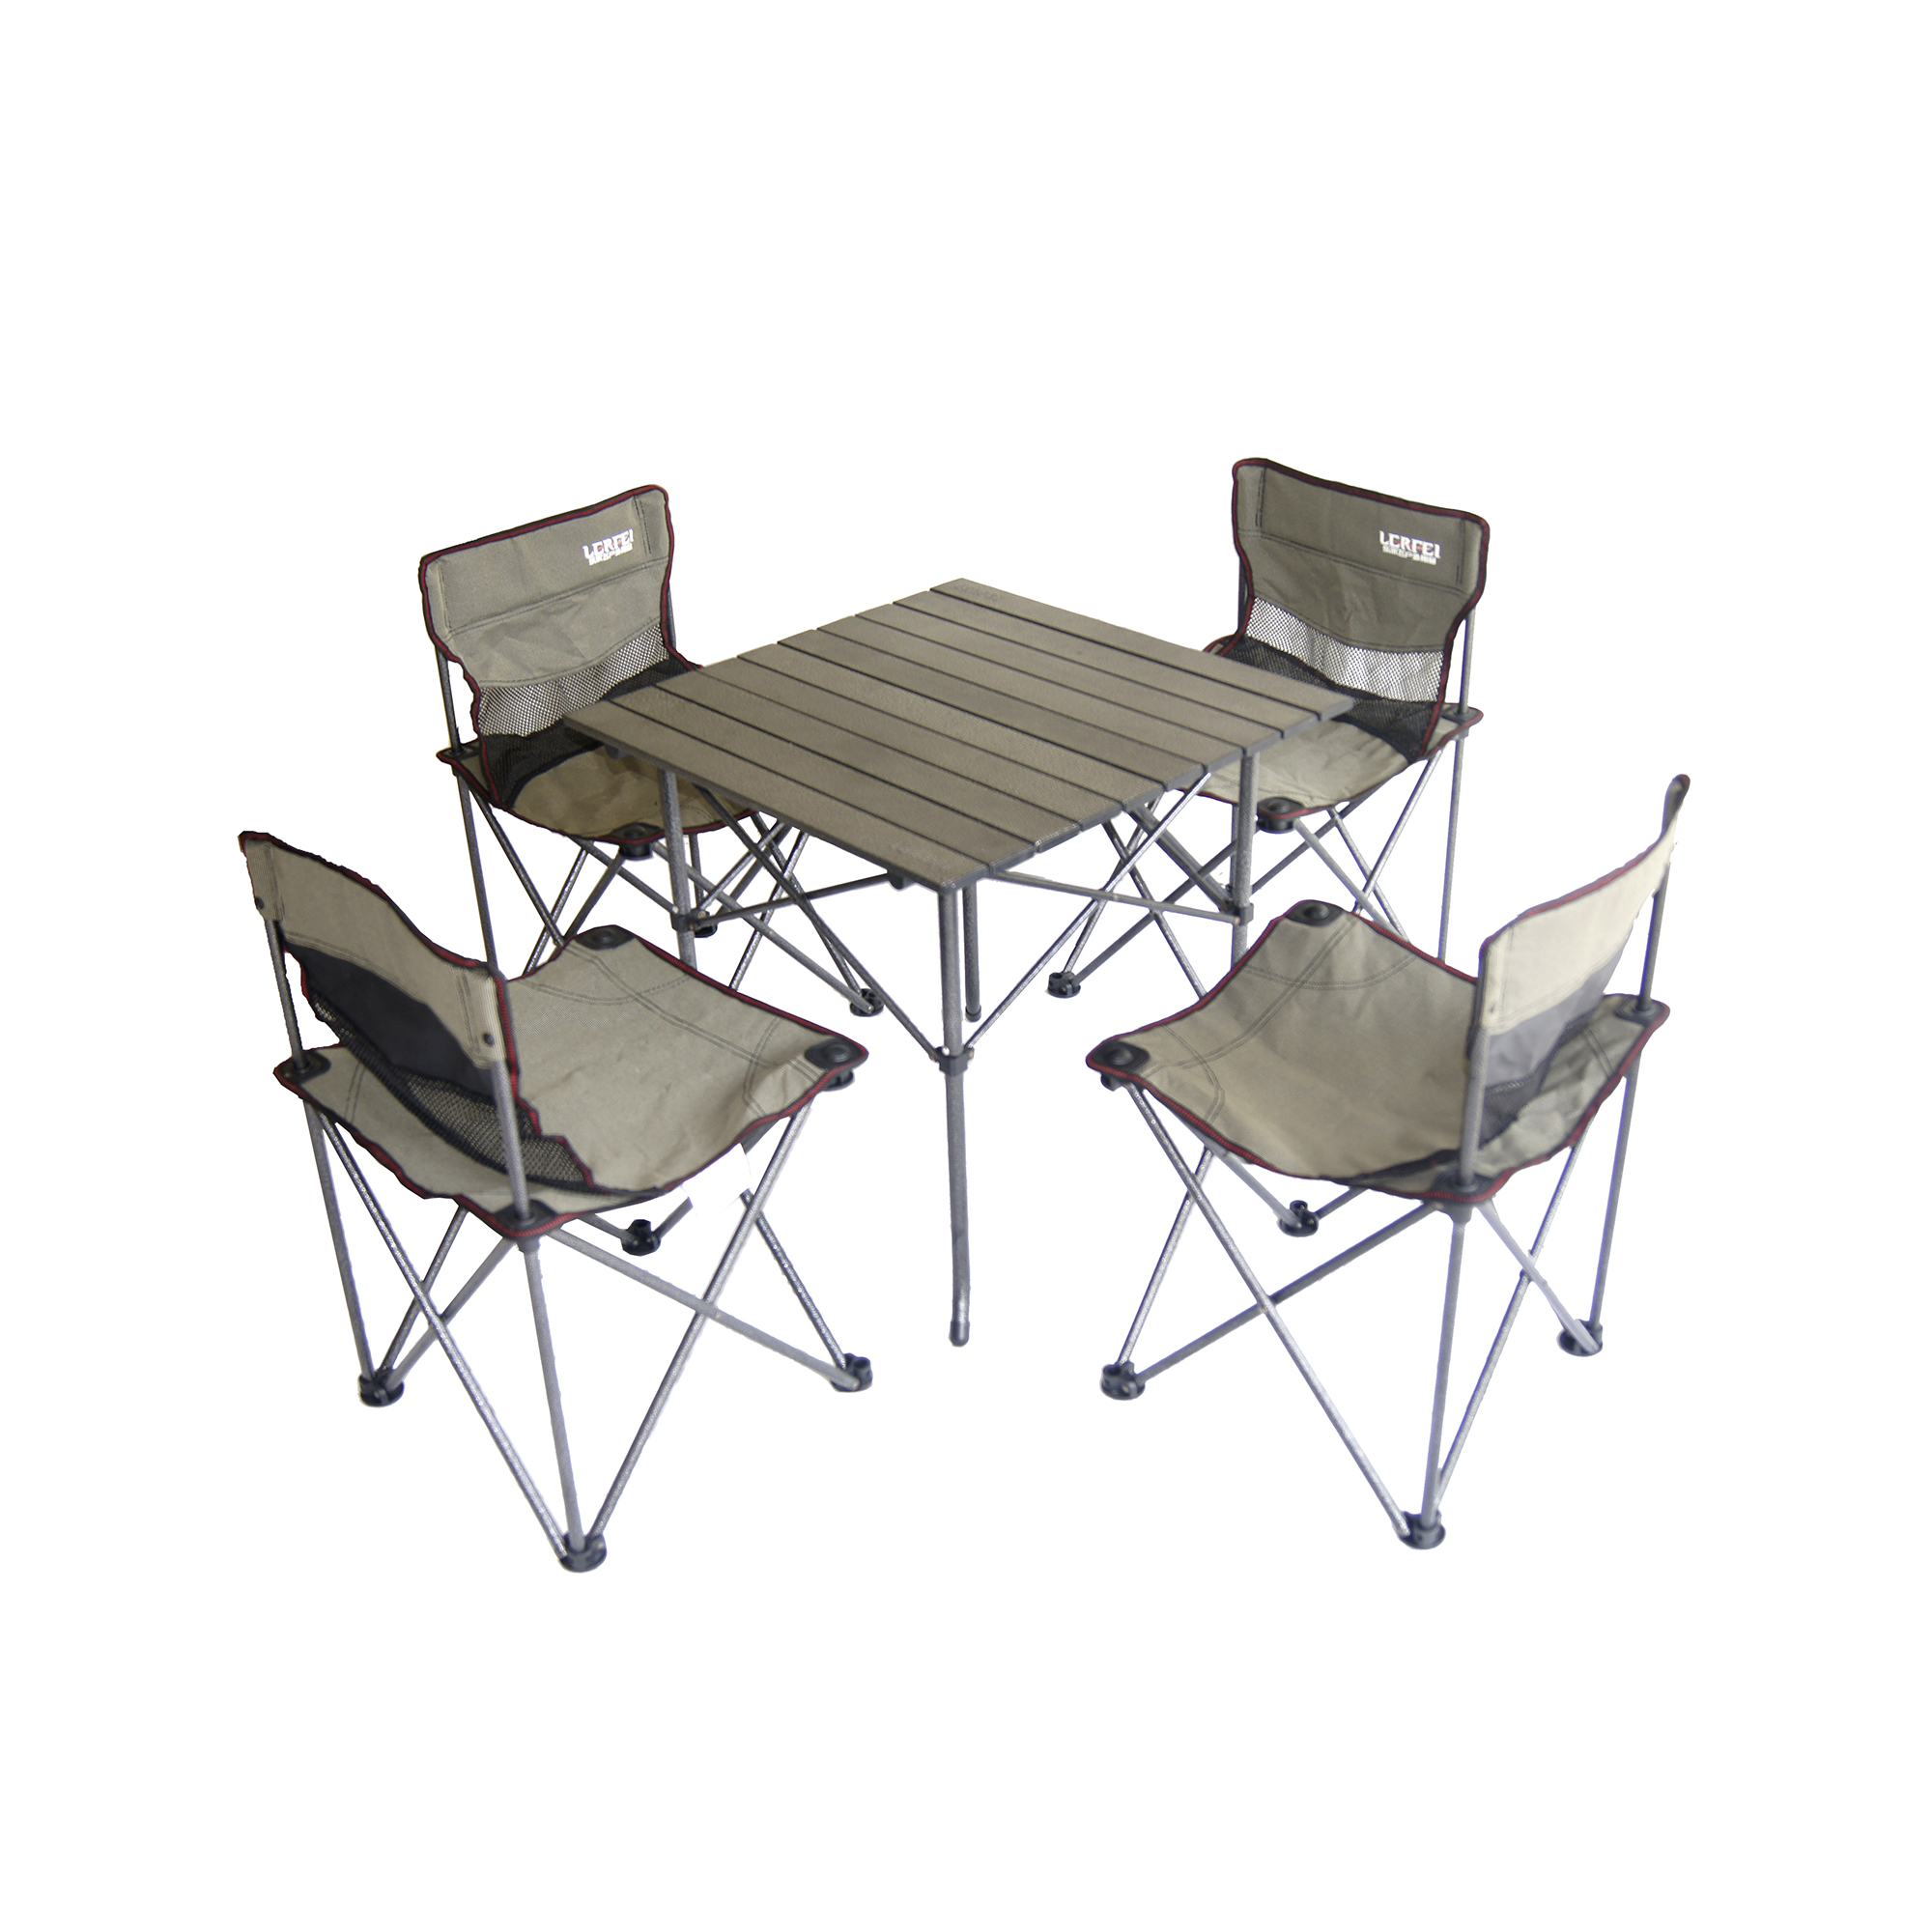 kids table and chair set kmart wheelchair office ore international portable children 39s camping